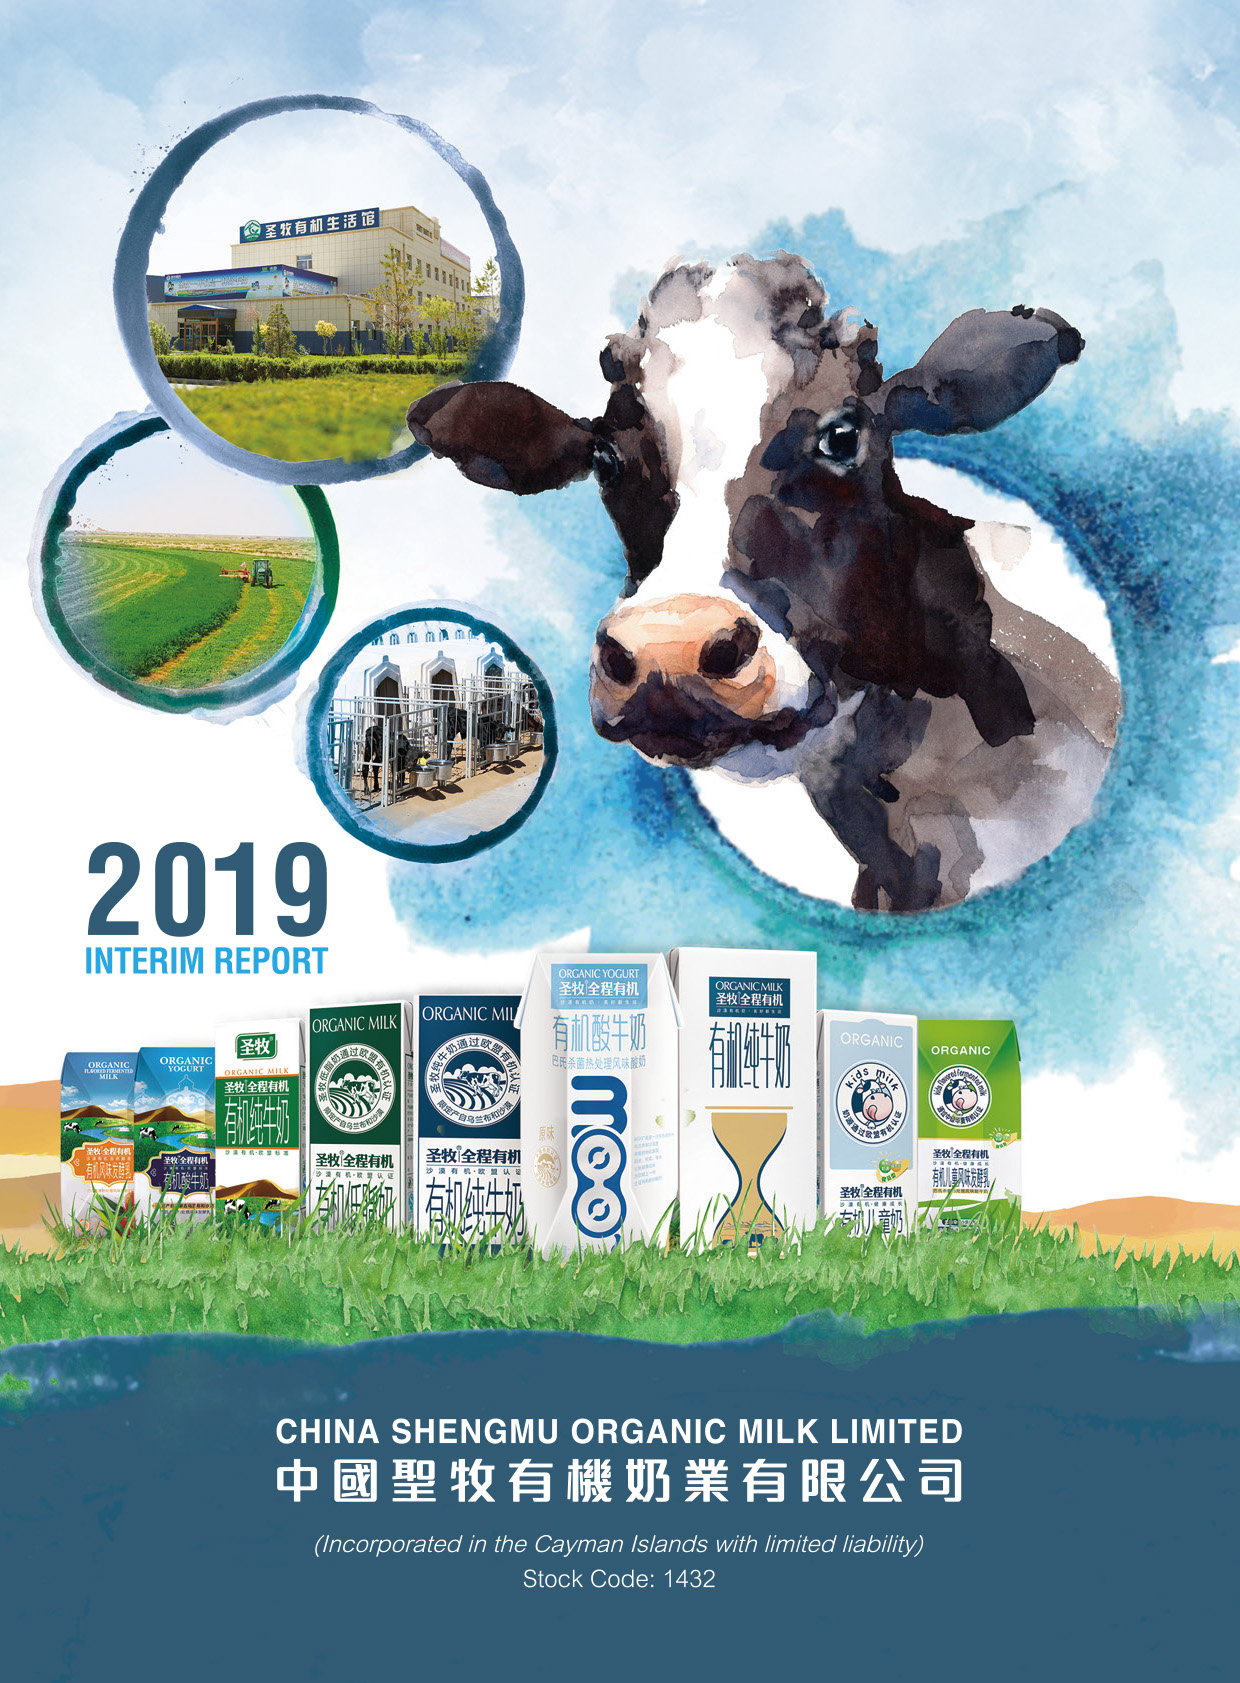 China Shengmu Organic Milk Limited